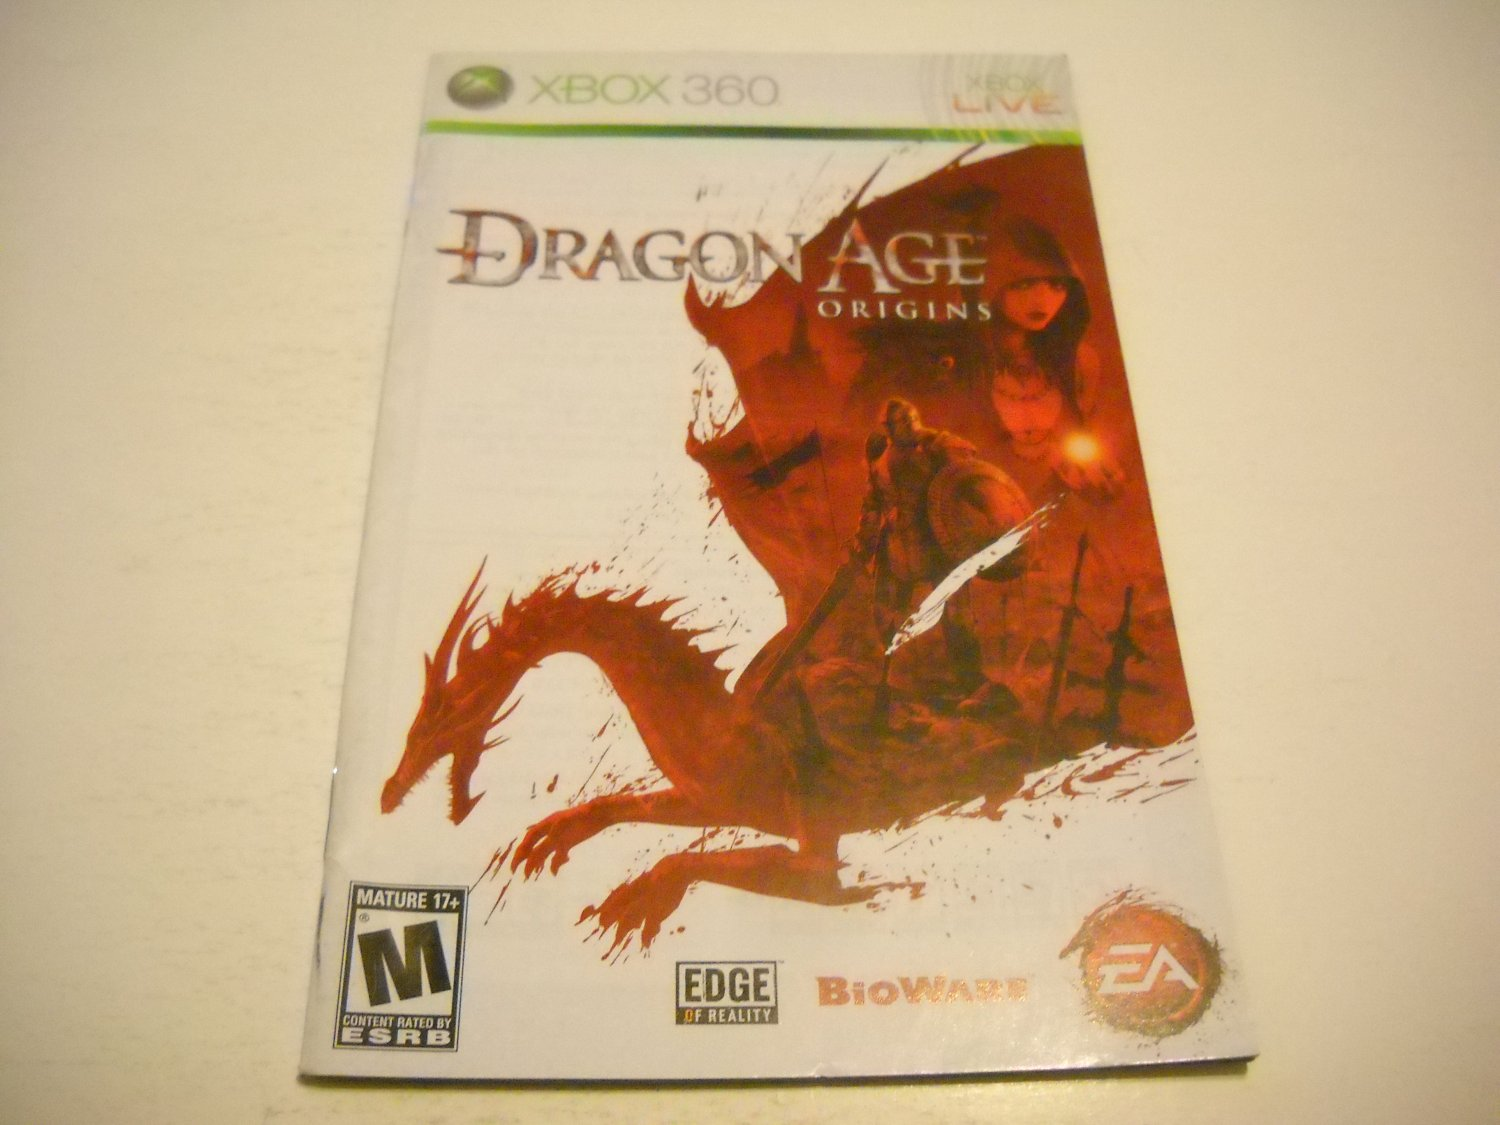 Manual ONLY ~  for Dragon Age Origins   - Xbox 360 Instruction Booklet